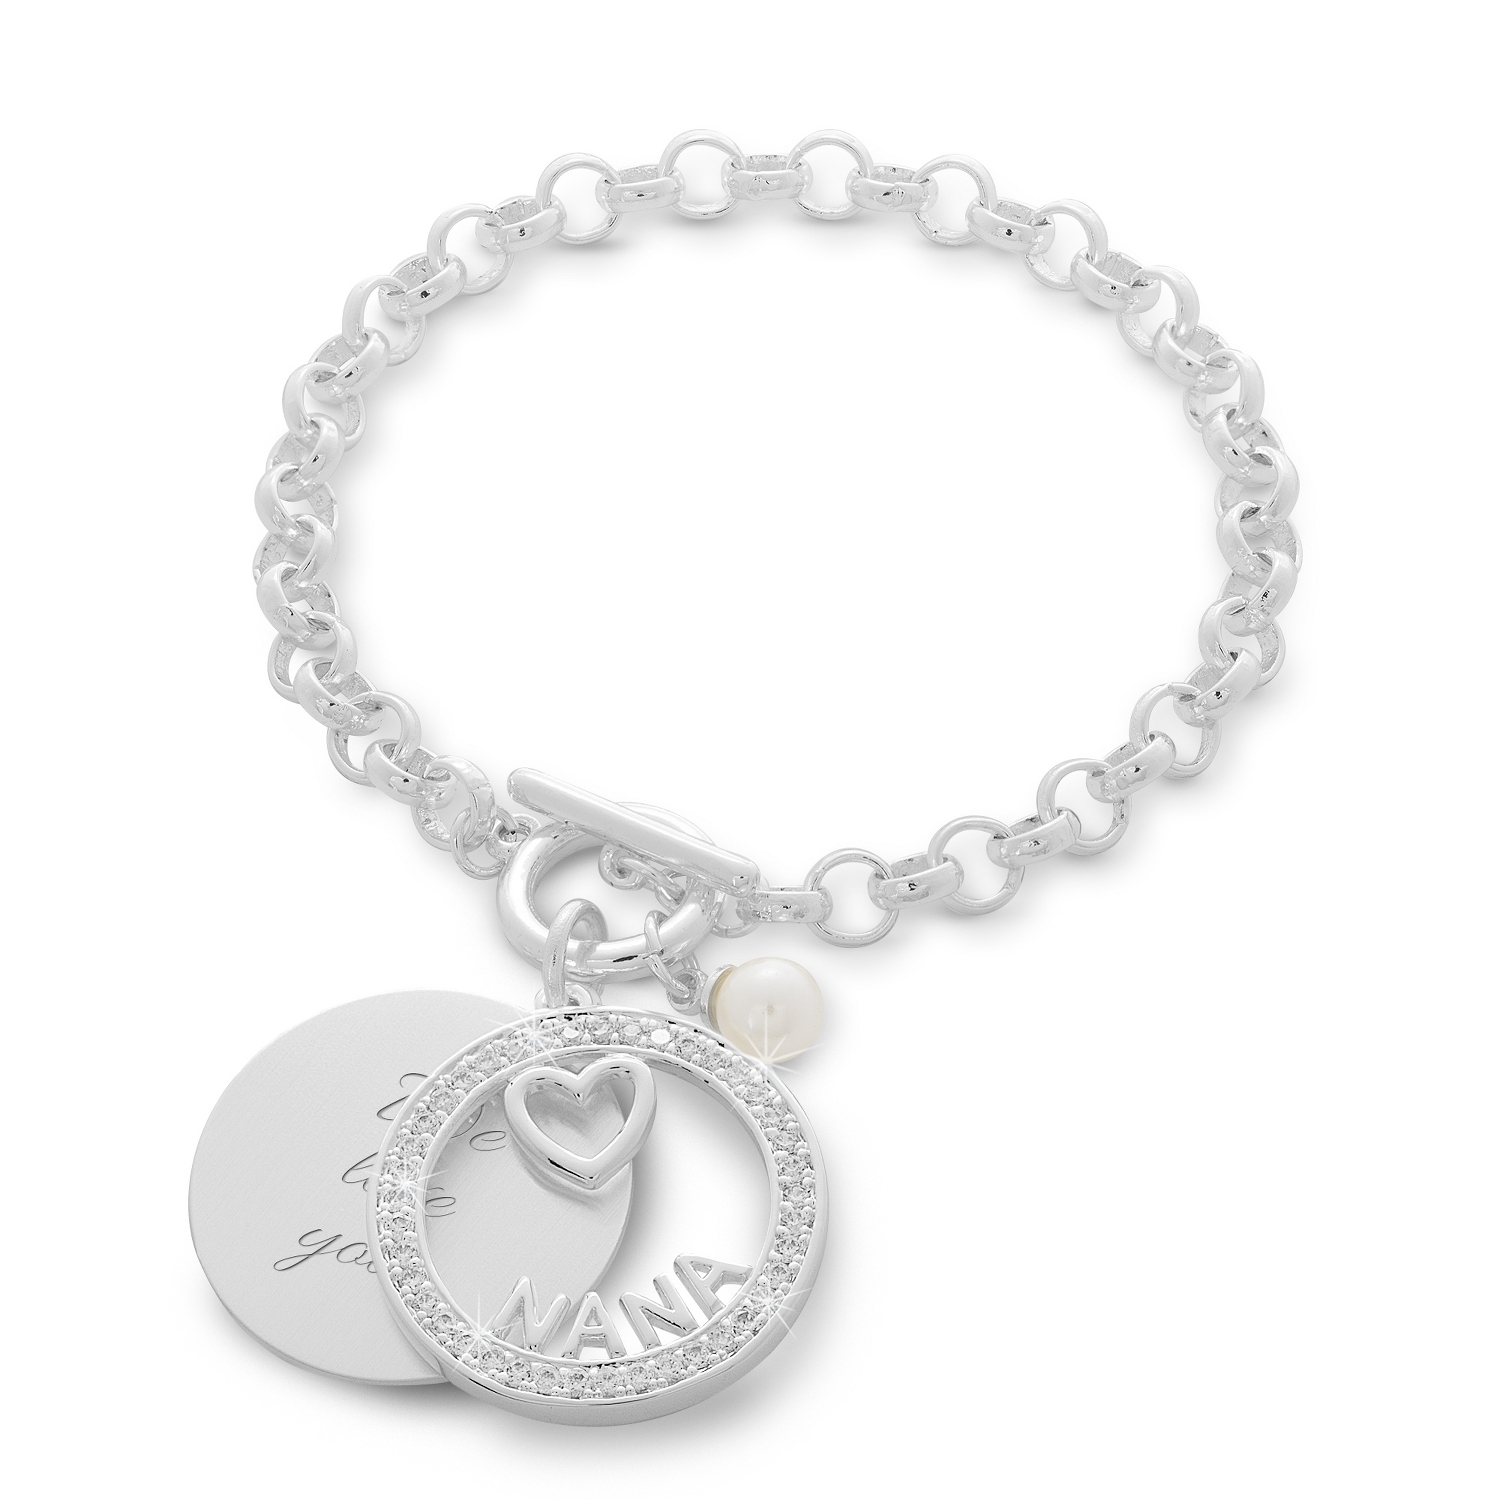 mothers brother dad necklace product sister aunt friend nana family gifts heart tree wholesale mom best silver